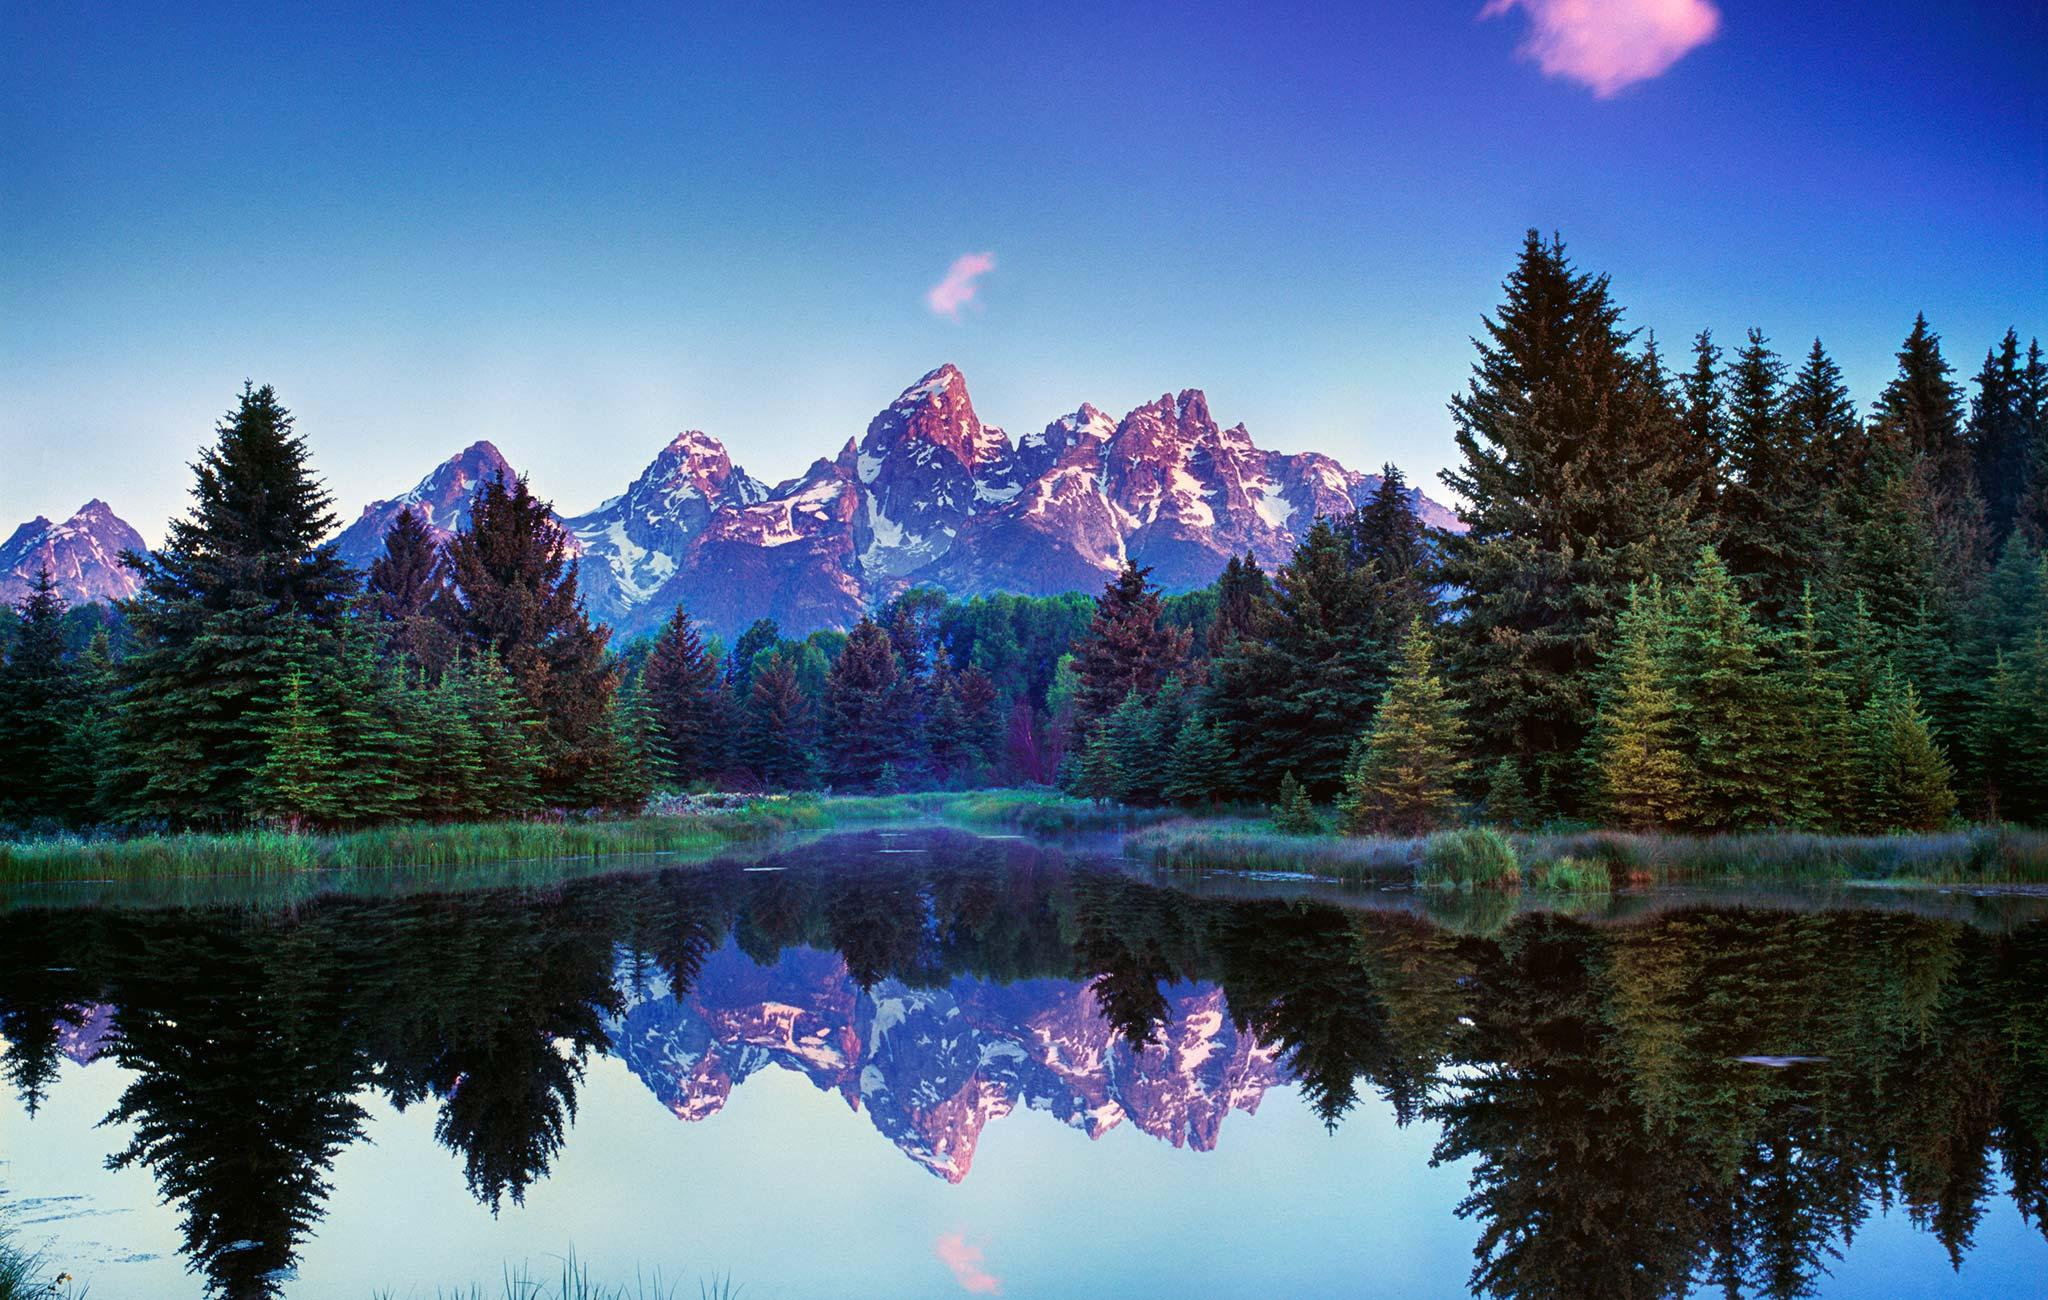 Grand Tetons Wallpaper For Computer